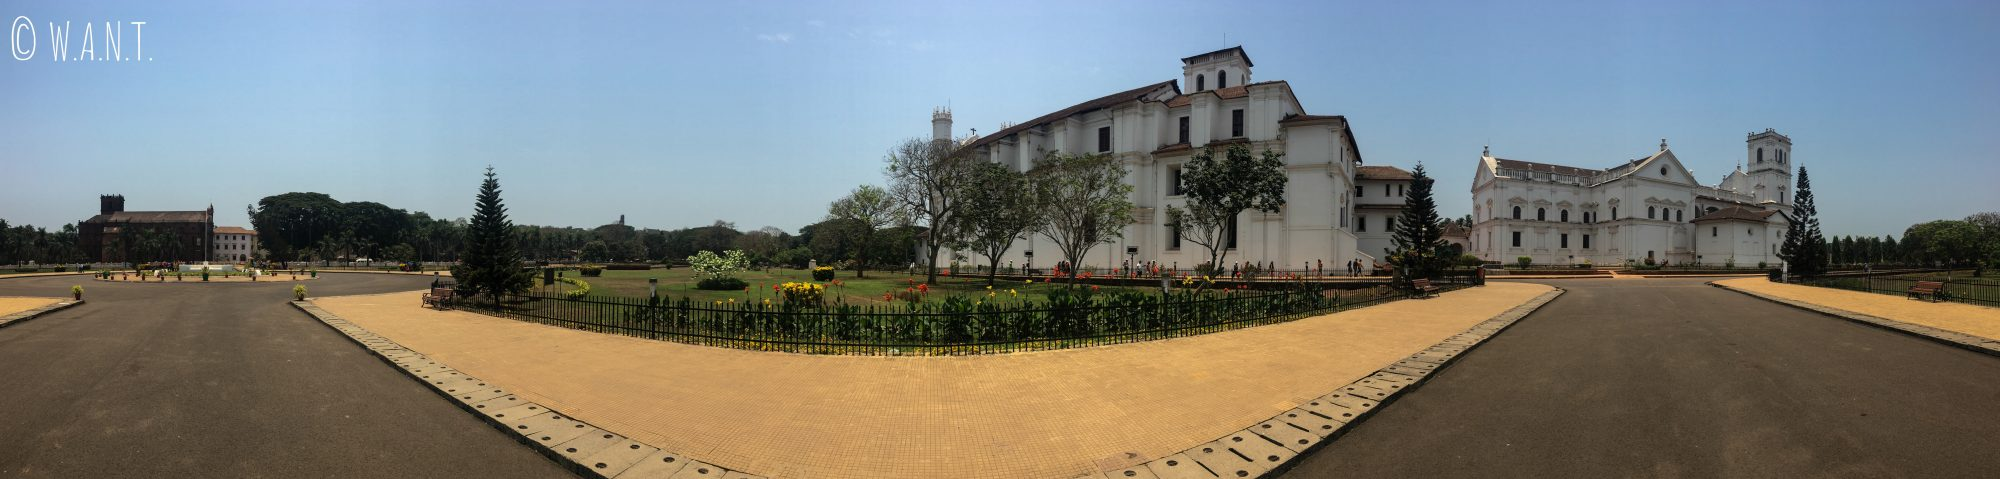 Panorama du site Unesco de Old Goa